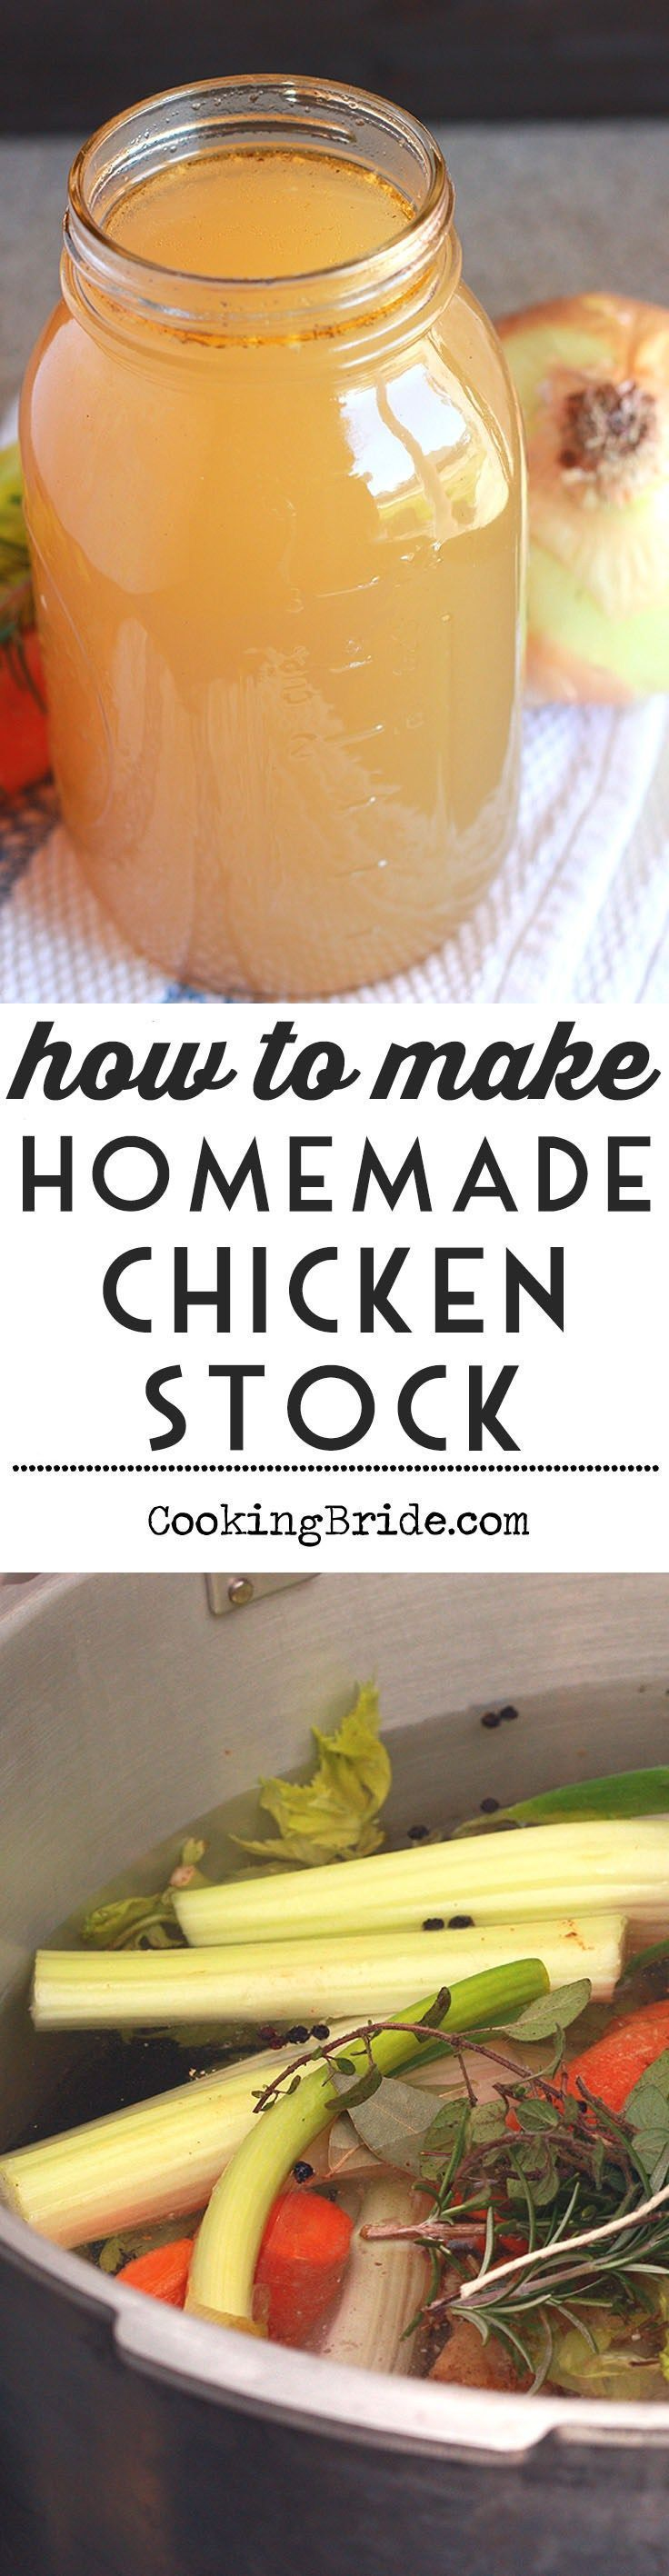 Don't waste your money on store brand chicken stock. Making your chicken stock and home is easy, delicious, and saves money.